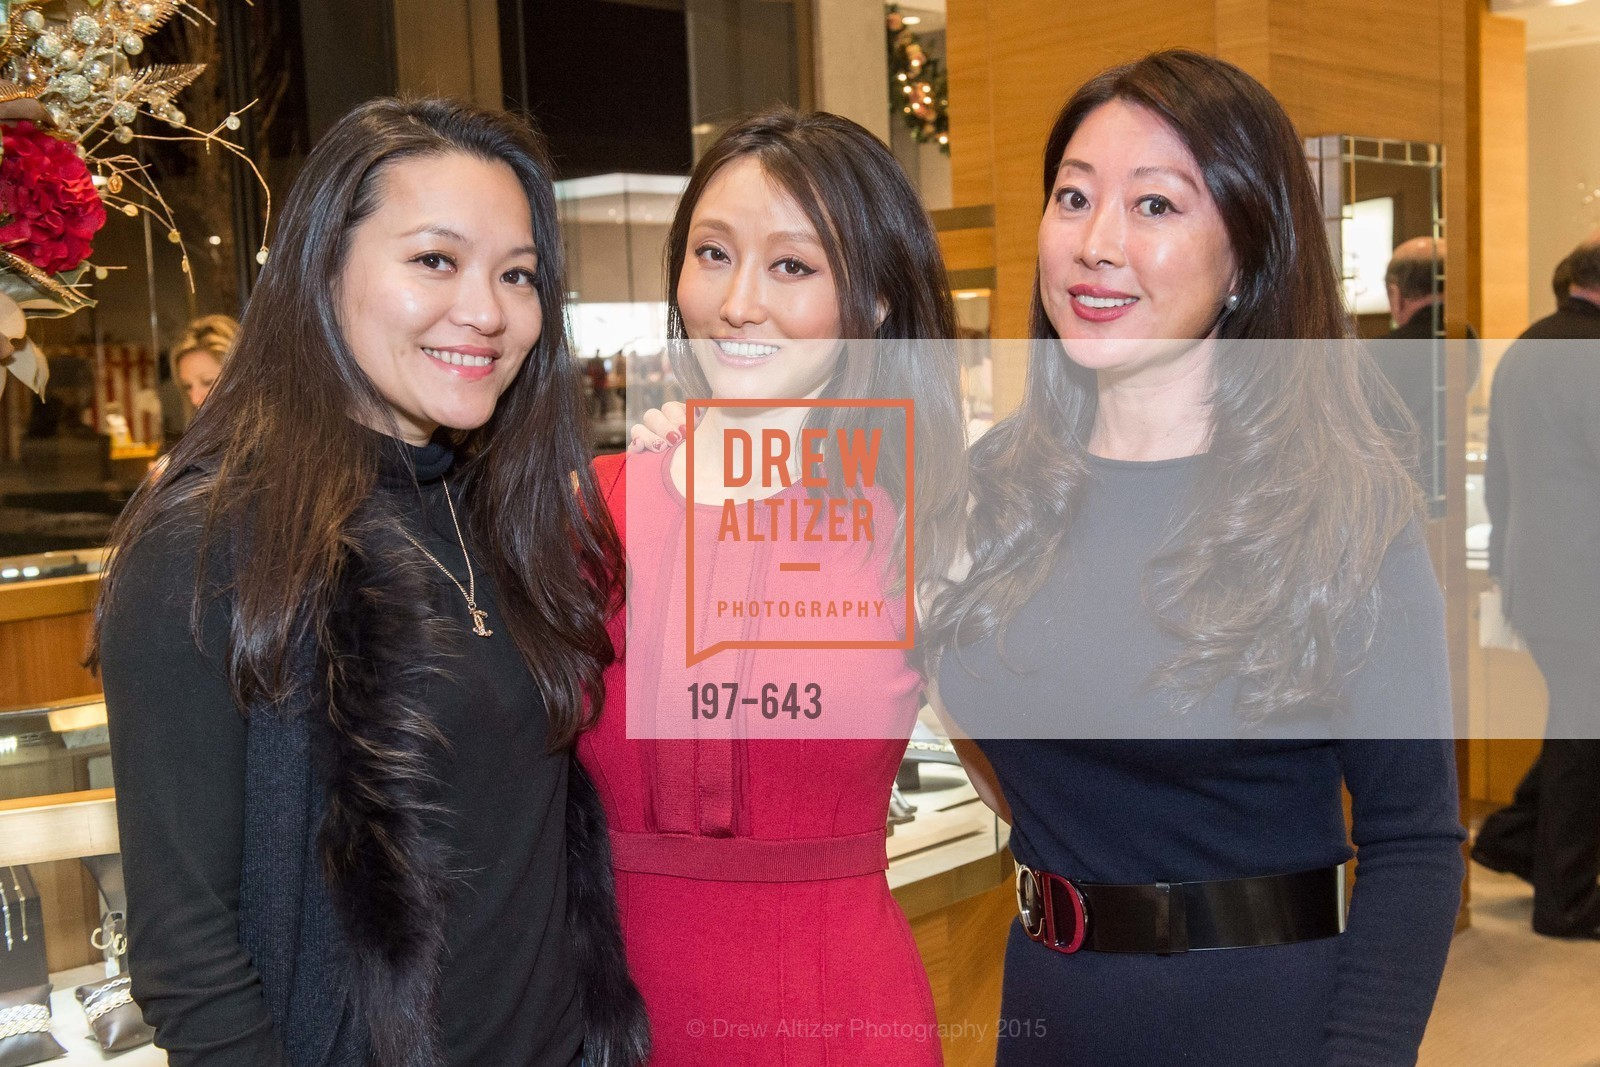 Jing Huang, Cindy Bi, Jennifer Conley, Shreve & Co & Holiday Event, Shreve & Co. 329 Stanford Shopping Center, December 10th, 2015,Drew Altizer, Drew Altizer Photography, full-service agency, private events, San Francisco photographer, photographer california